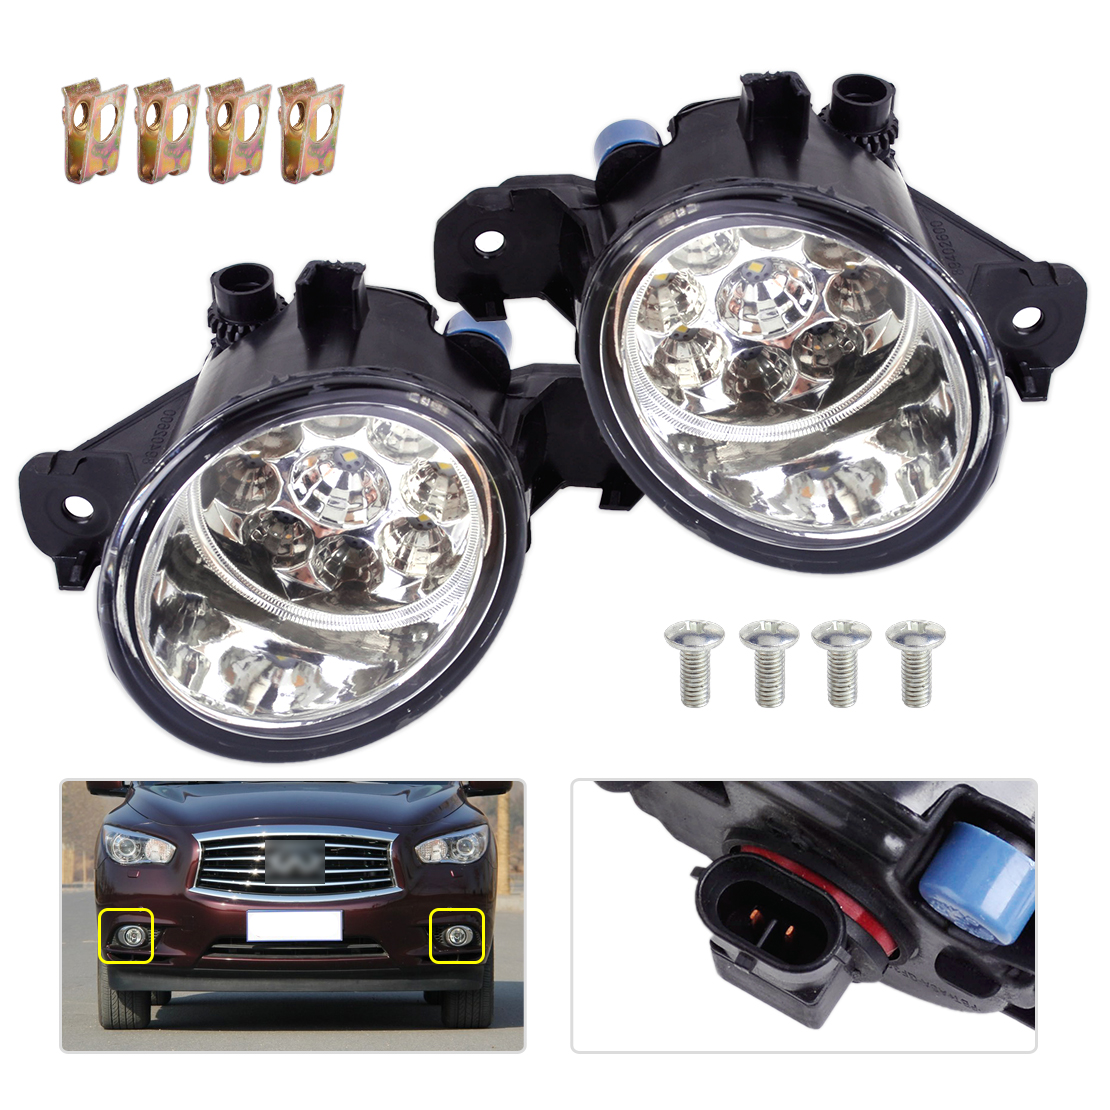 DWCX 1 Pair 12V 9 LED Front Fog Light Lamps DRL Daytime Running Driving Lights for Infiniti G37 JX35 Nissan Maxima Rogue Sentra led front fog lights for opel astra g saloon f69  1998 09 2009 car styling round bumper drl daytime running driving fog lamps